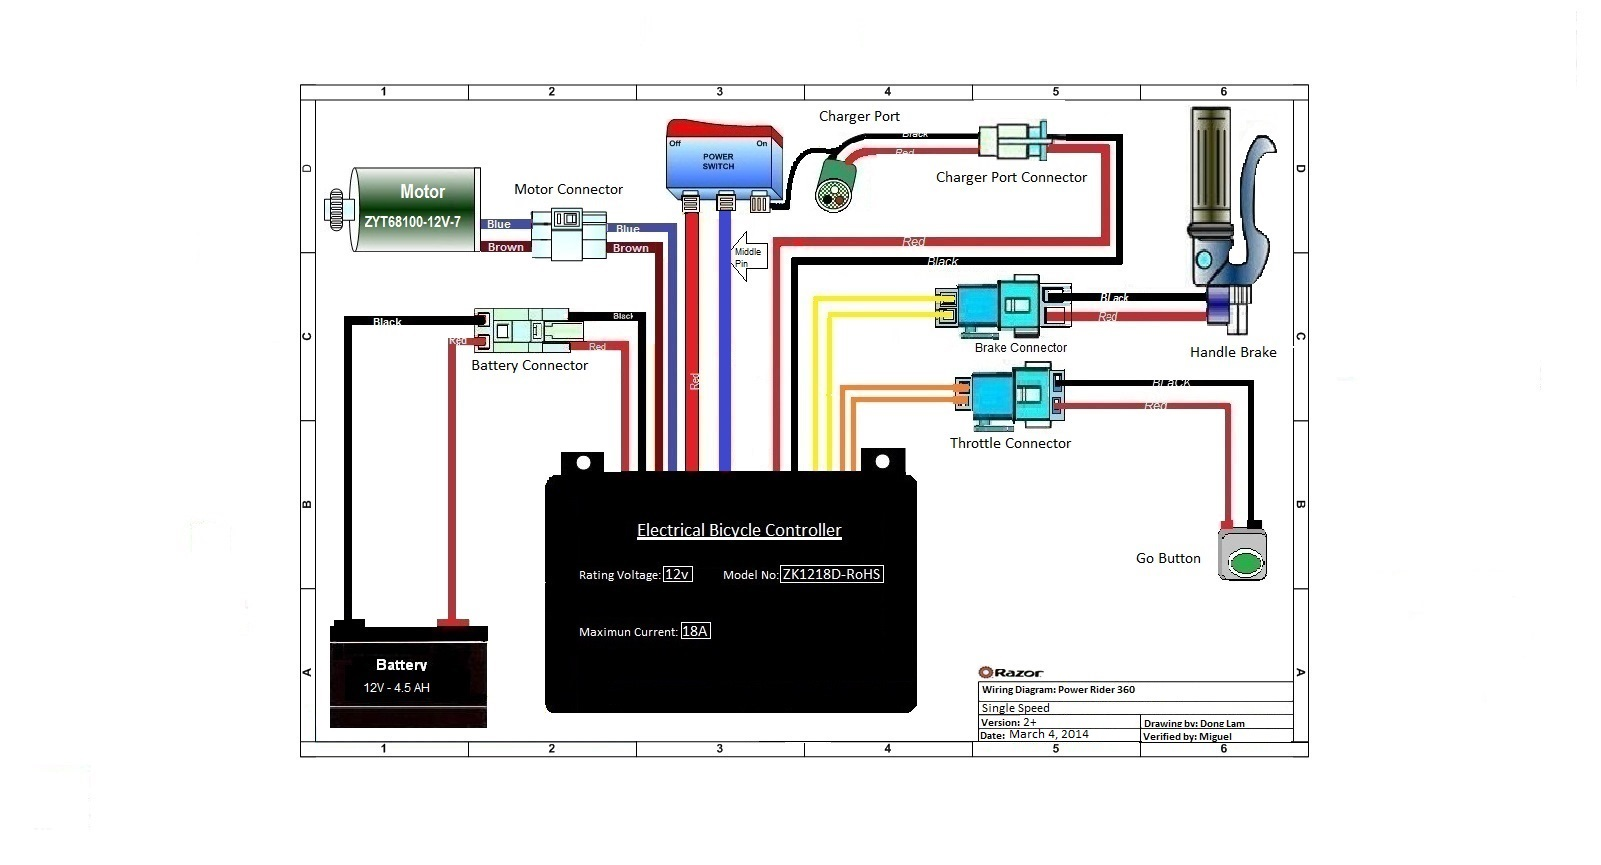 hight resolution of  power rider 360 versions 2 wiring diagram